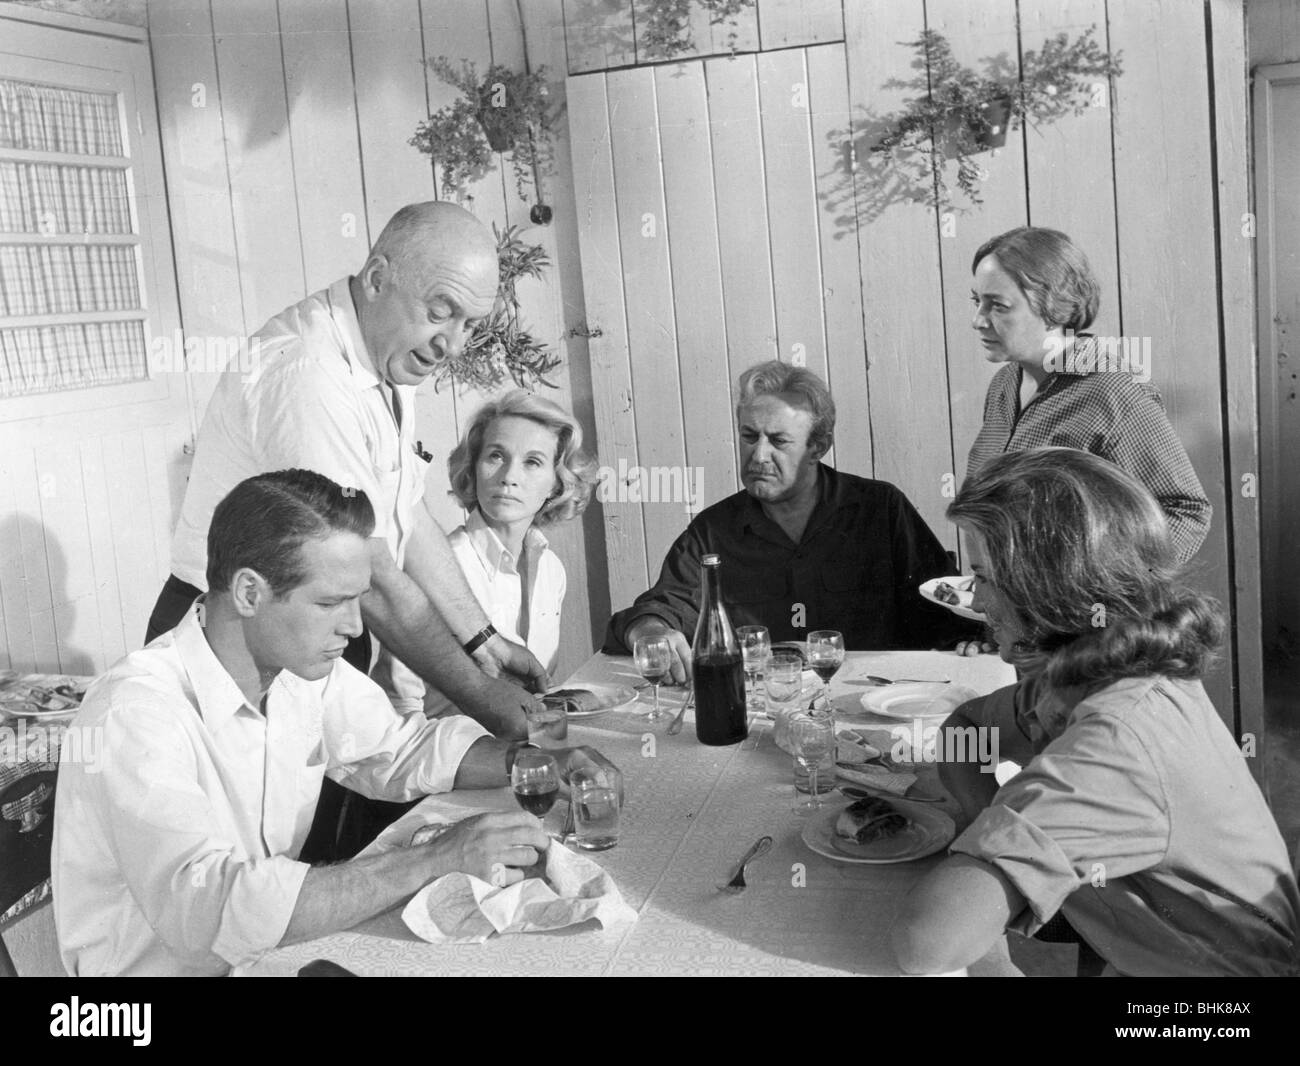 Director and cast of Exodus, 1960. - Stock Image